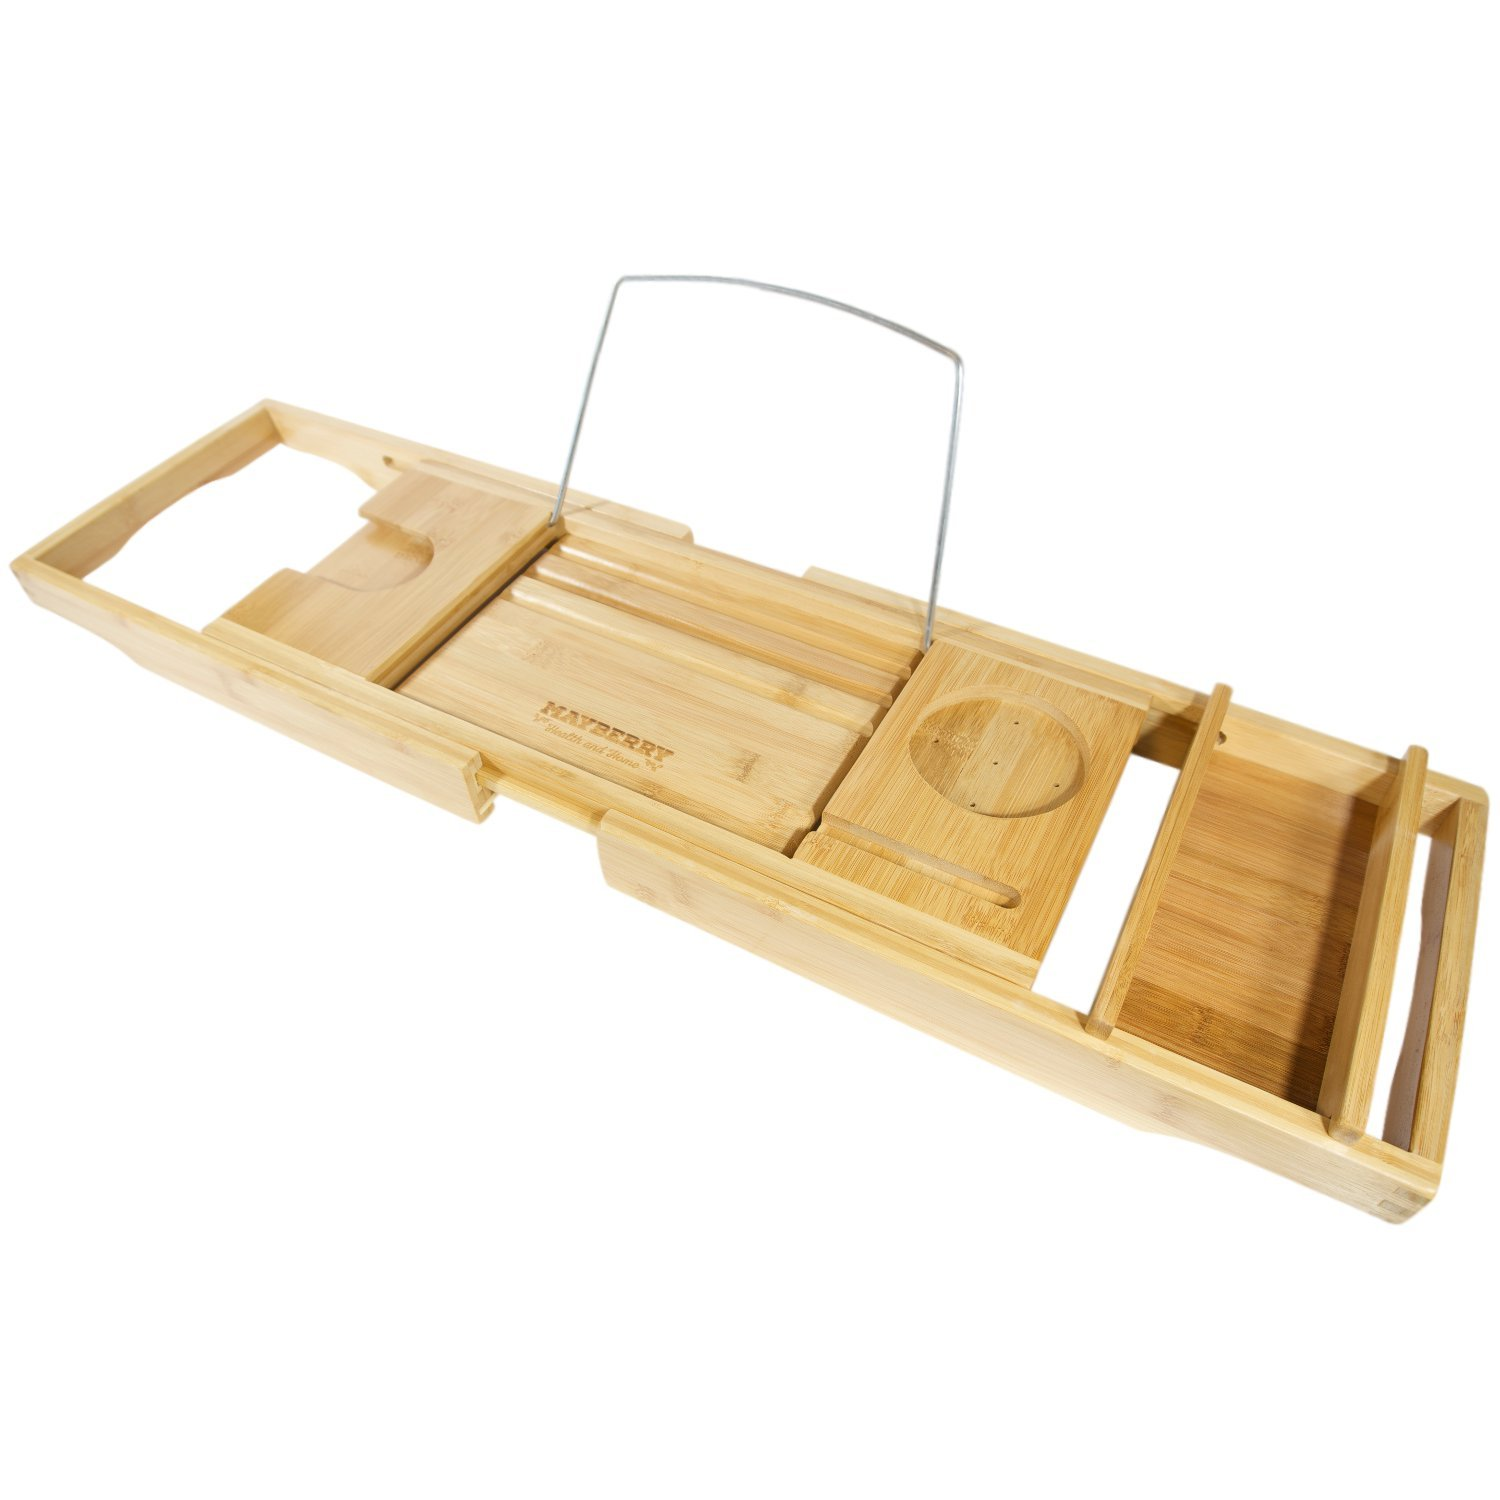 Bamboo Bathtub Caddy with Arms That Extend From 29.5 Up To 43 Inches, Bathtub  Tray